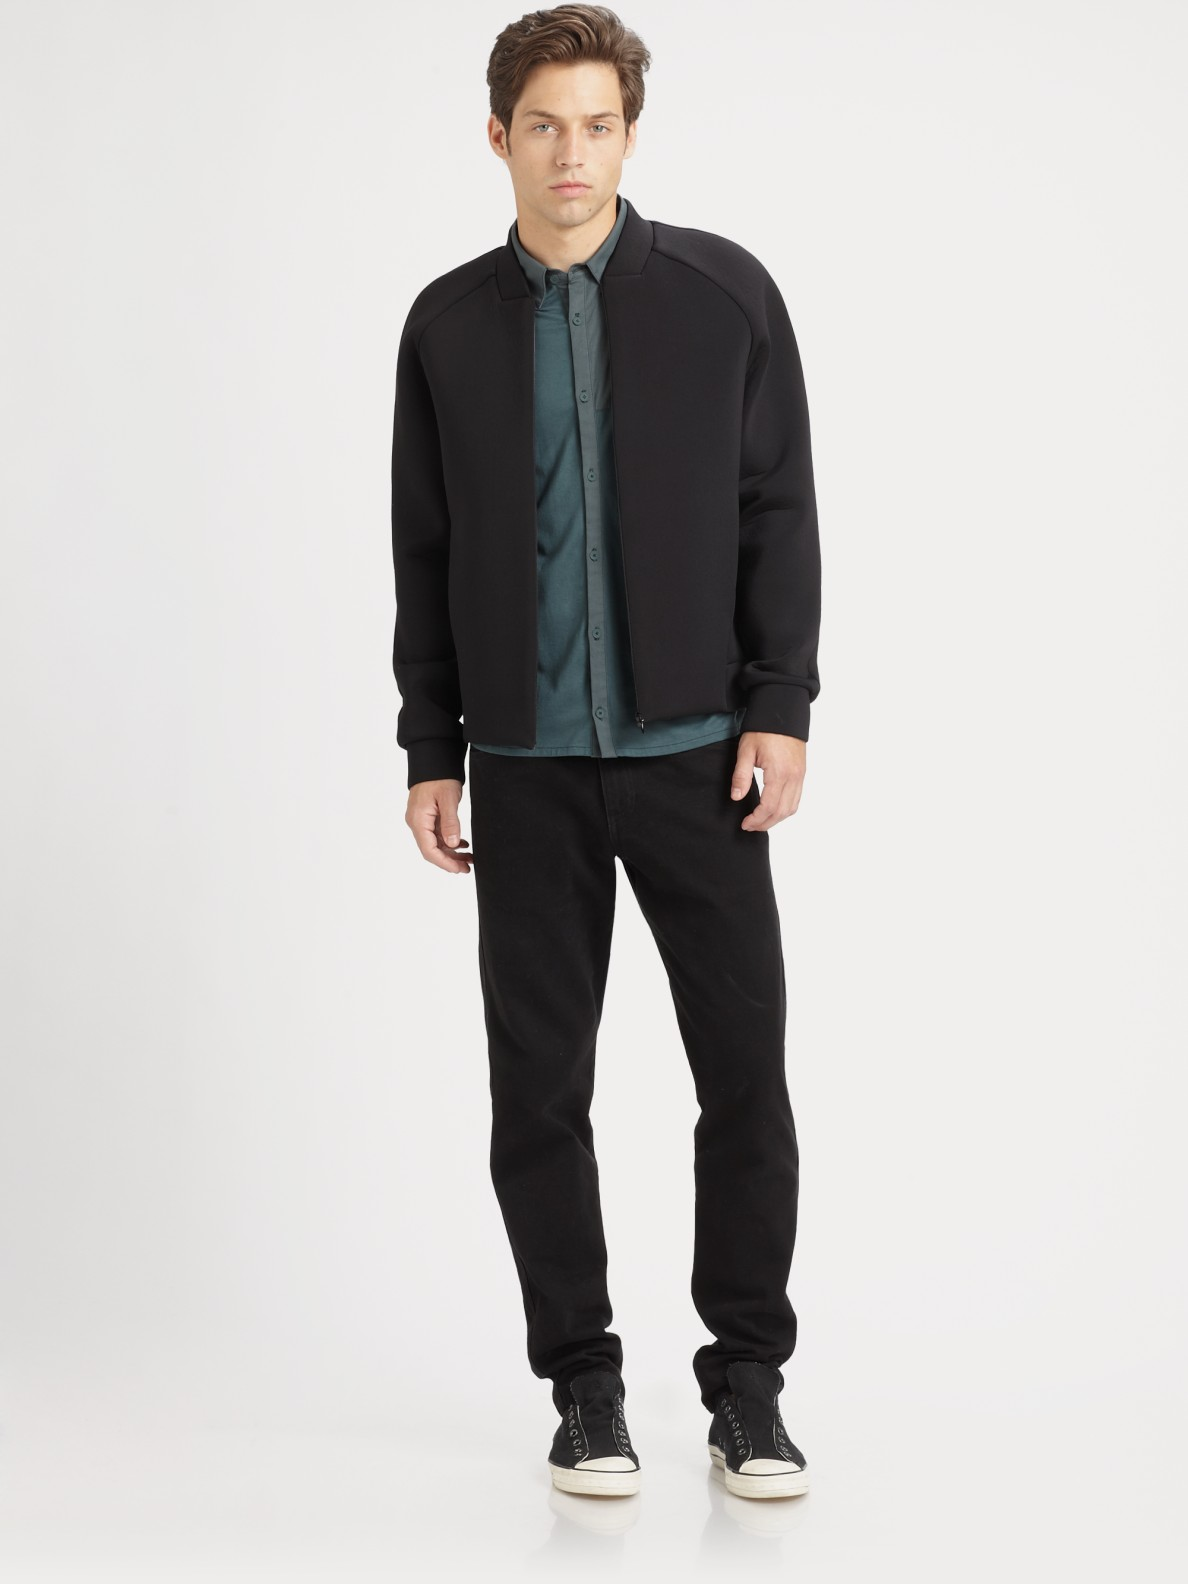 T by alexander wang Neoprene Bomber Jacket in Black for Men | Lyst